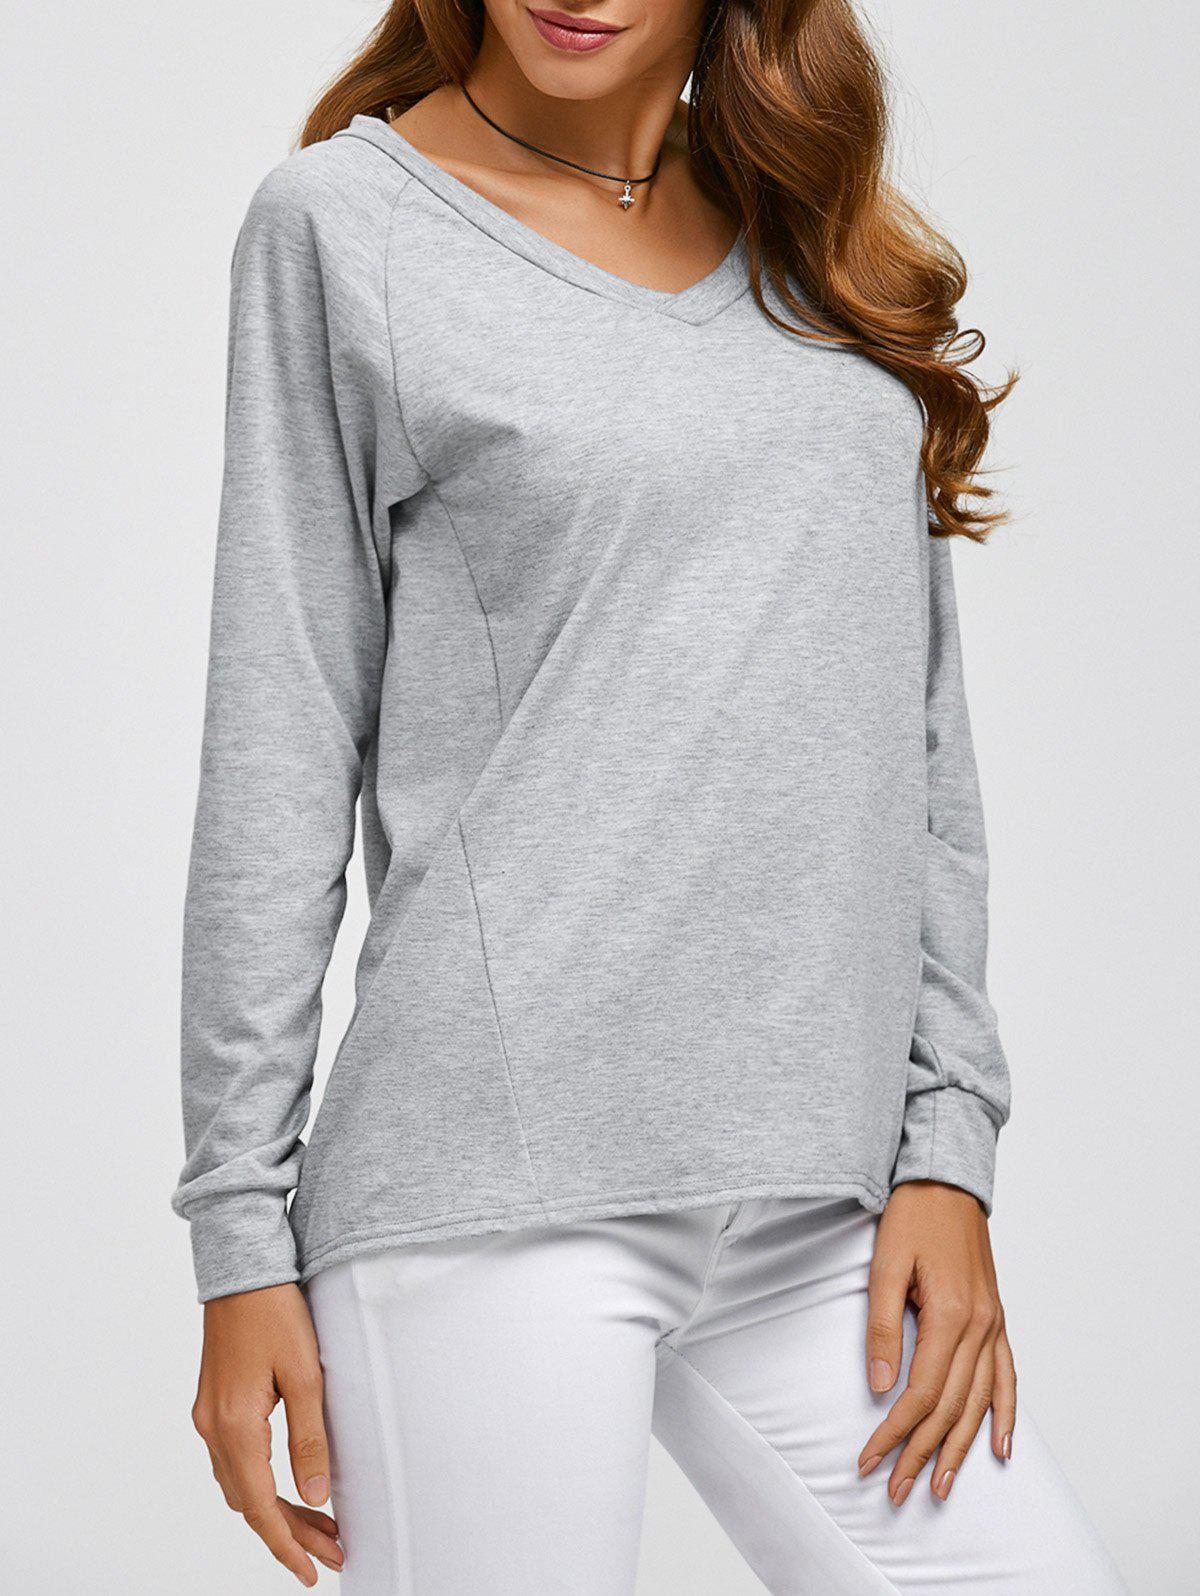 Comfy V Neck Long Sleeve T-Shirt - GRAY S